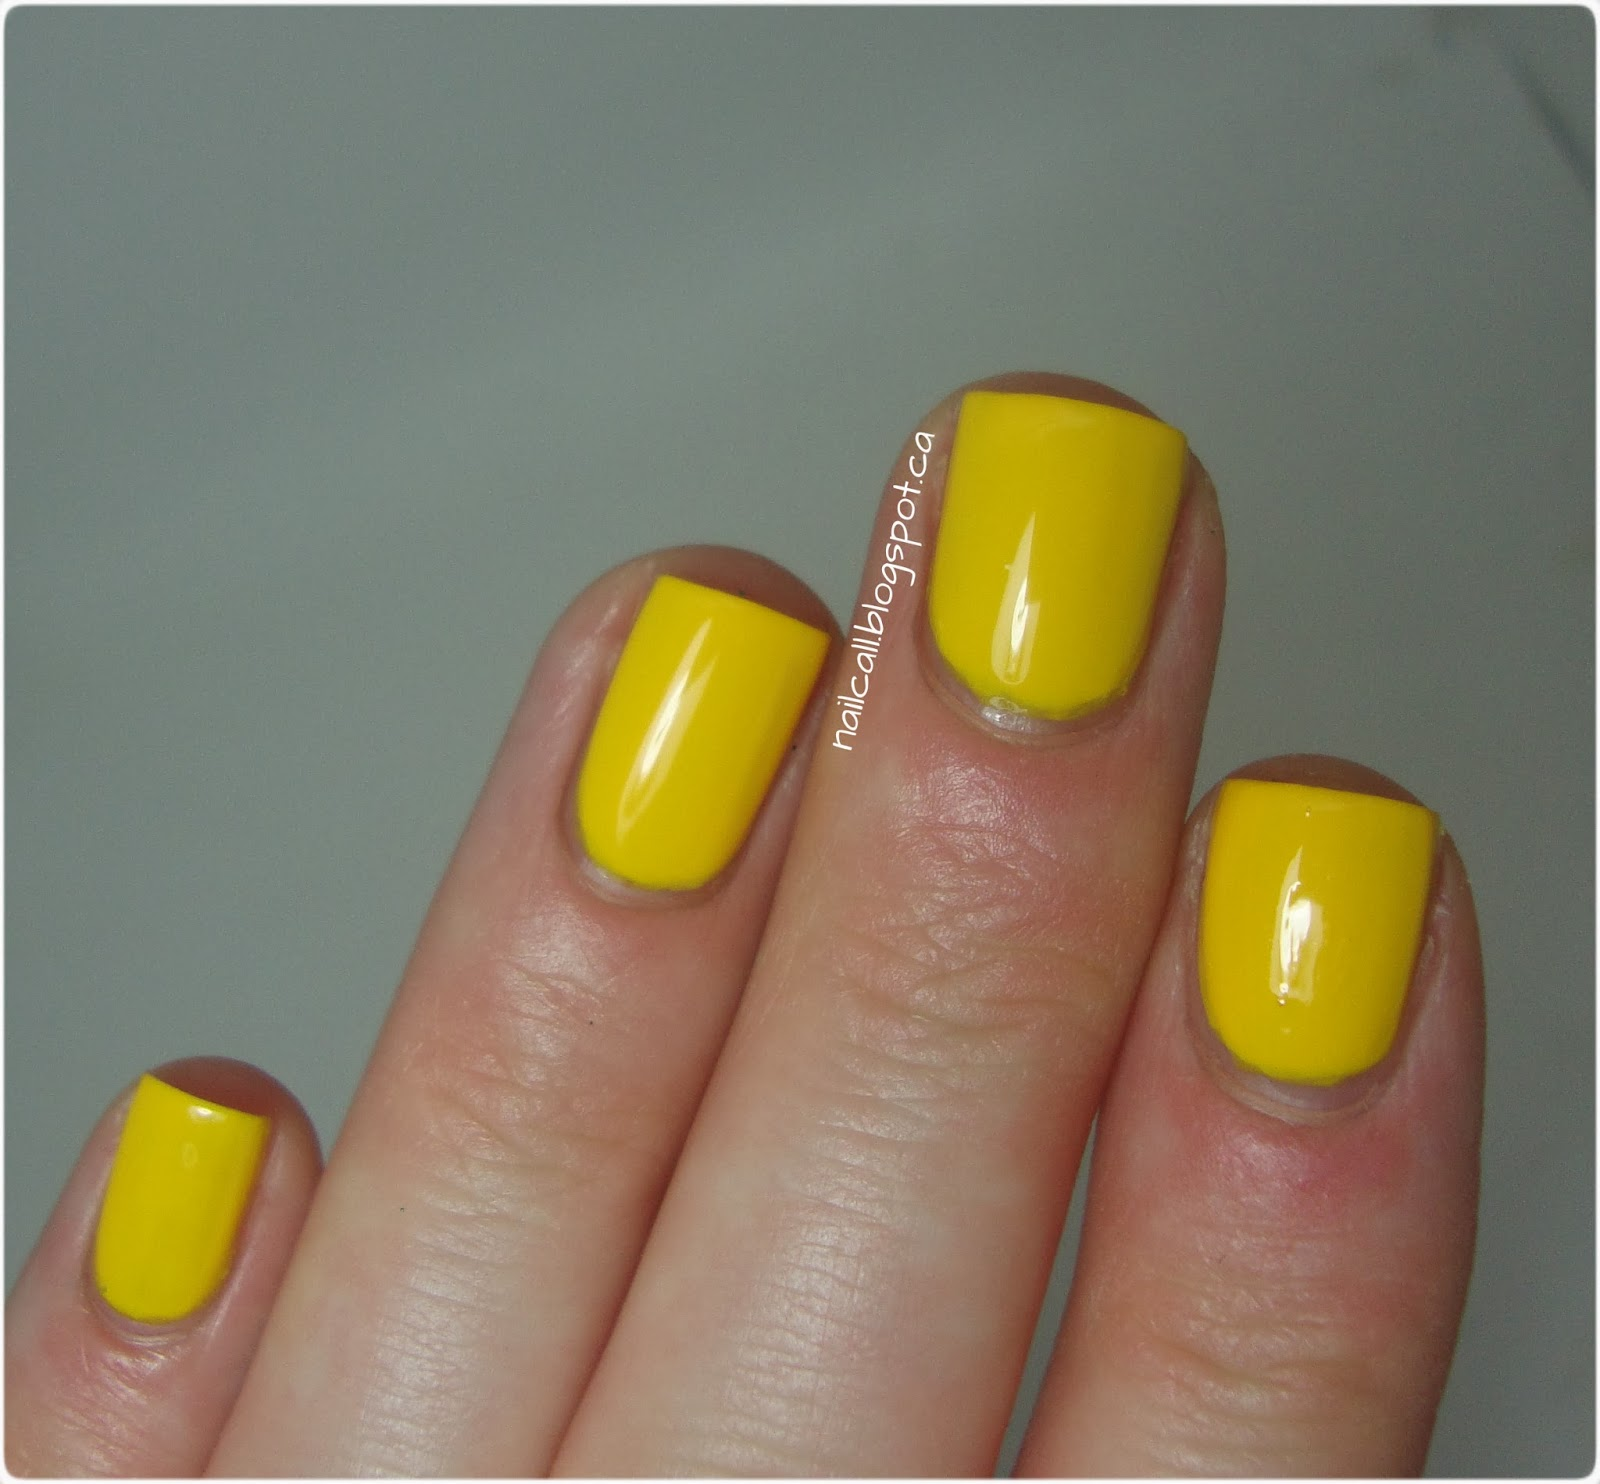 OPI Yellopalooza swatch 2